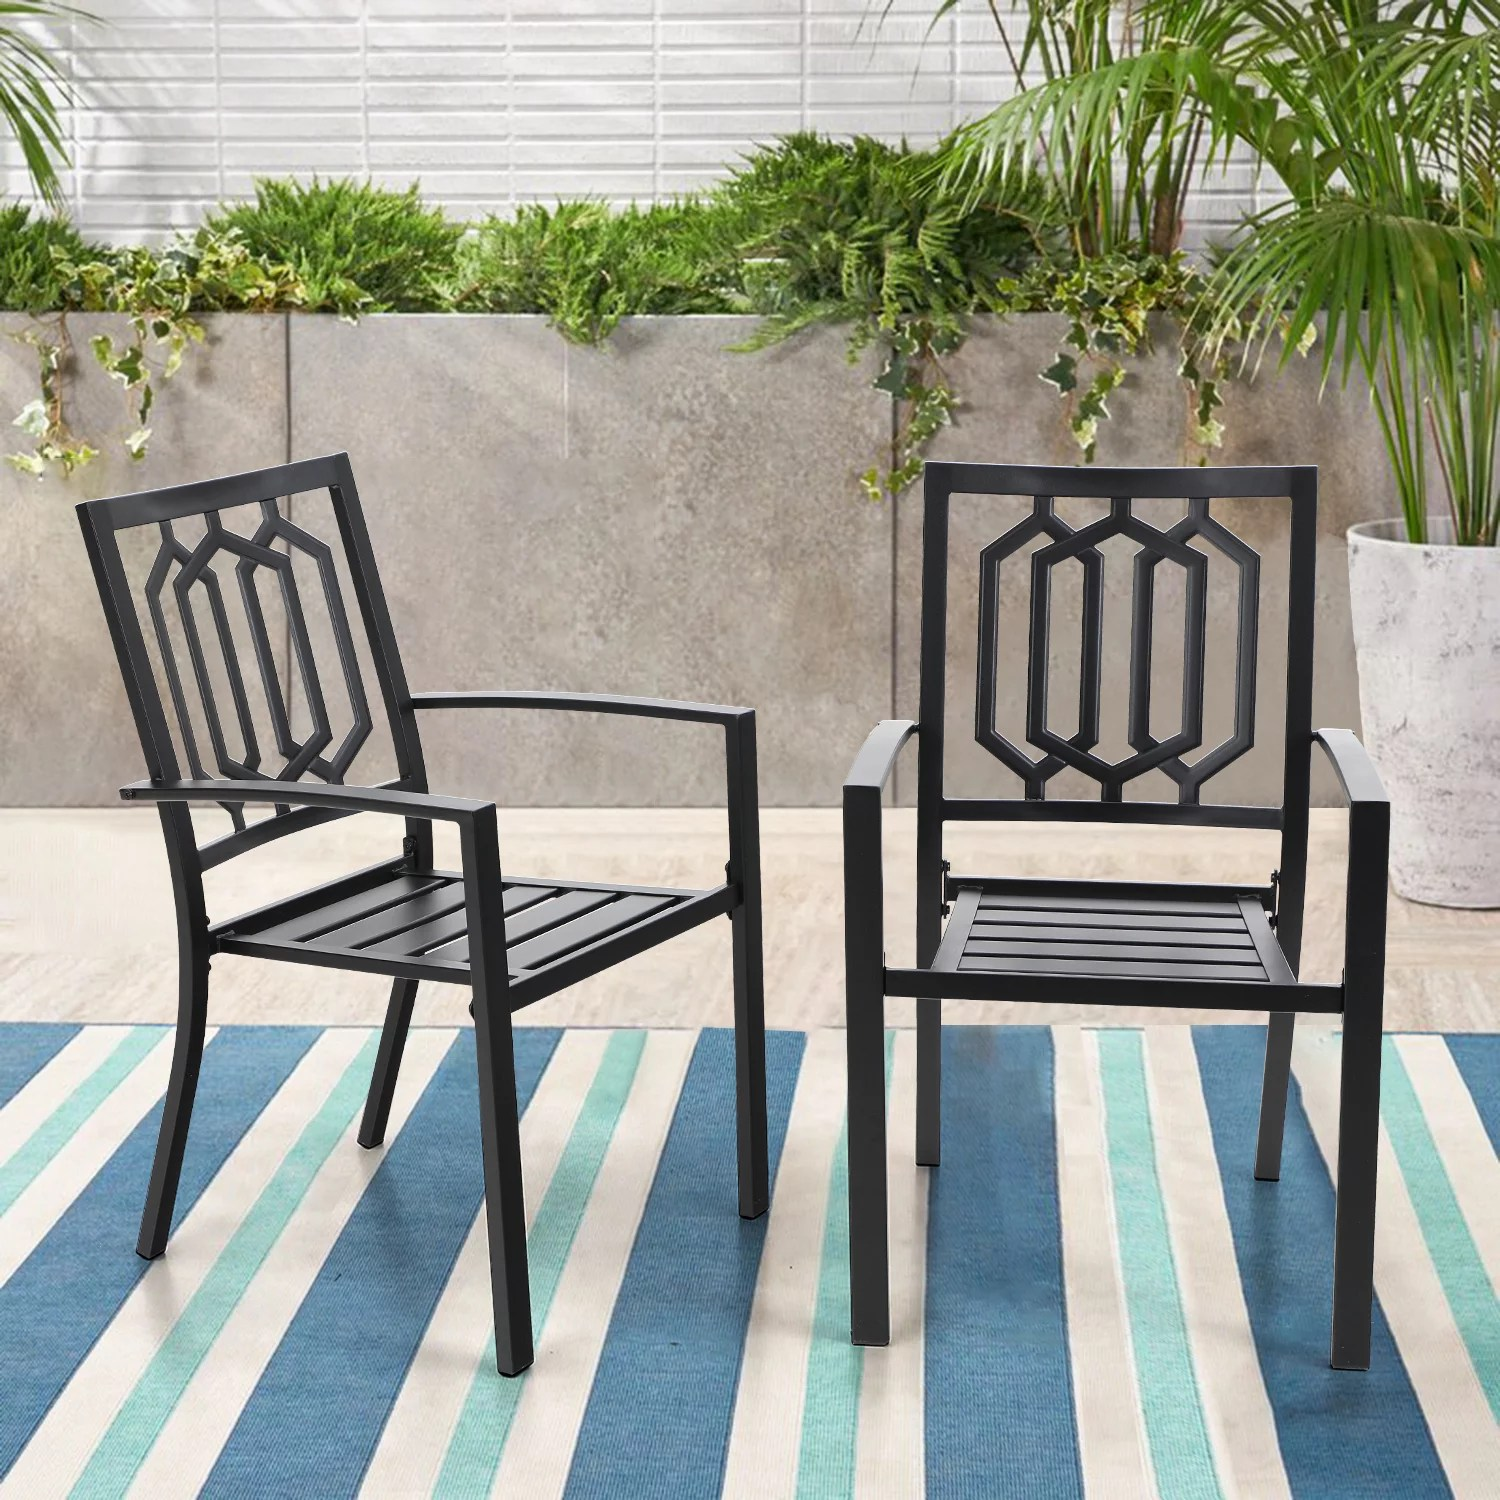 mf studio outdoor chairs set of 2 iron metal dining 300 lbs weight capacity patio bistro chairs with armrest black